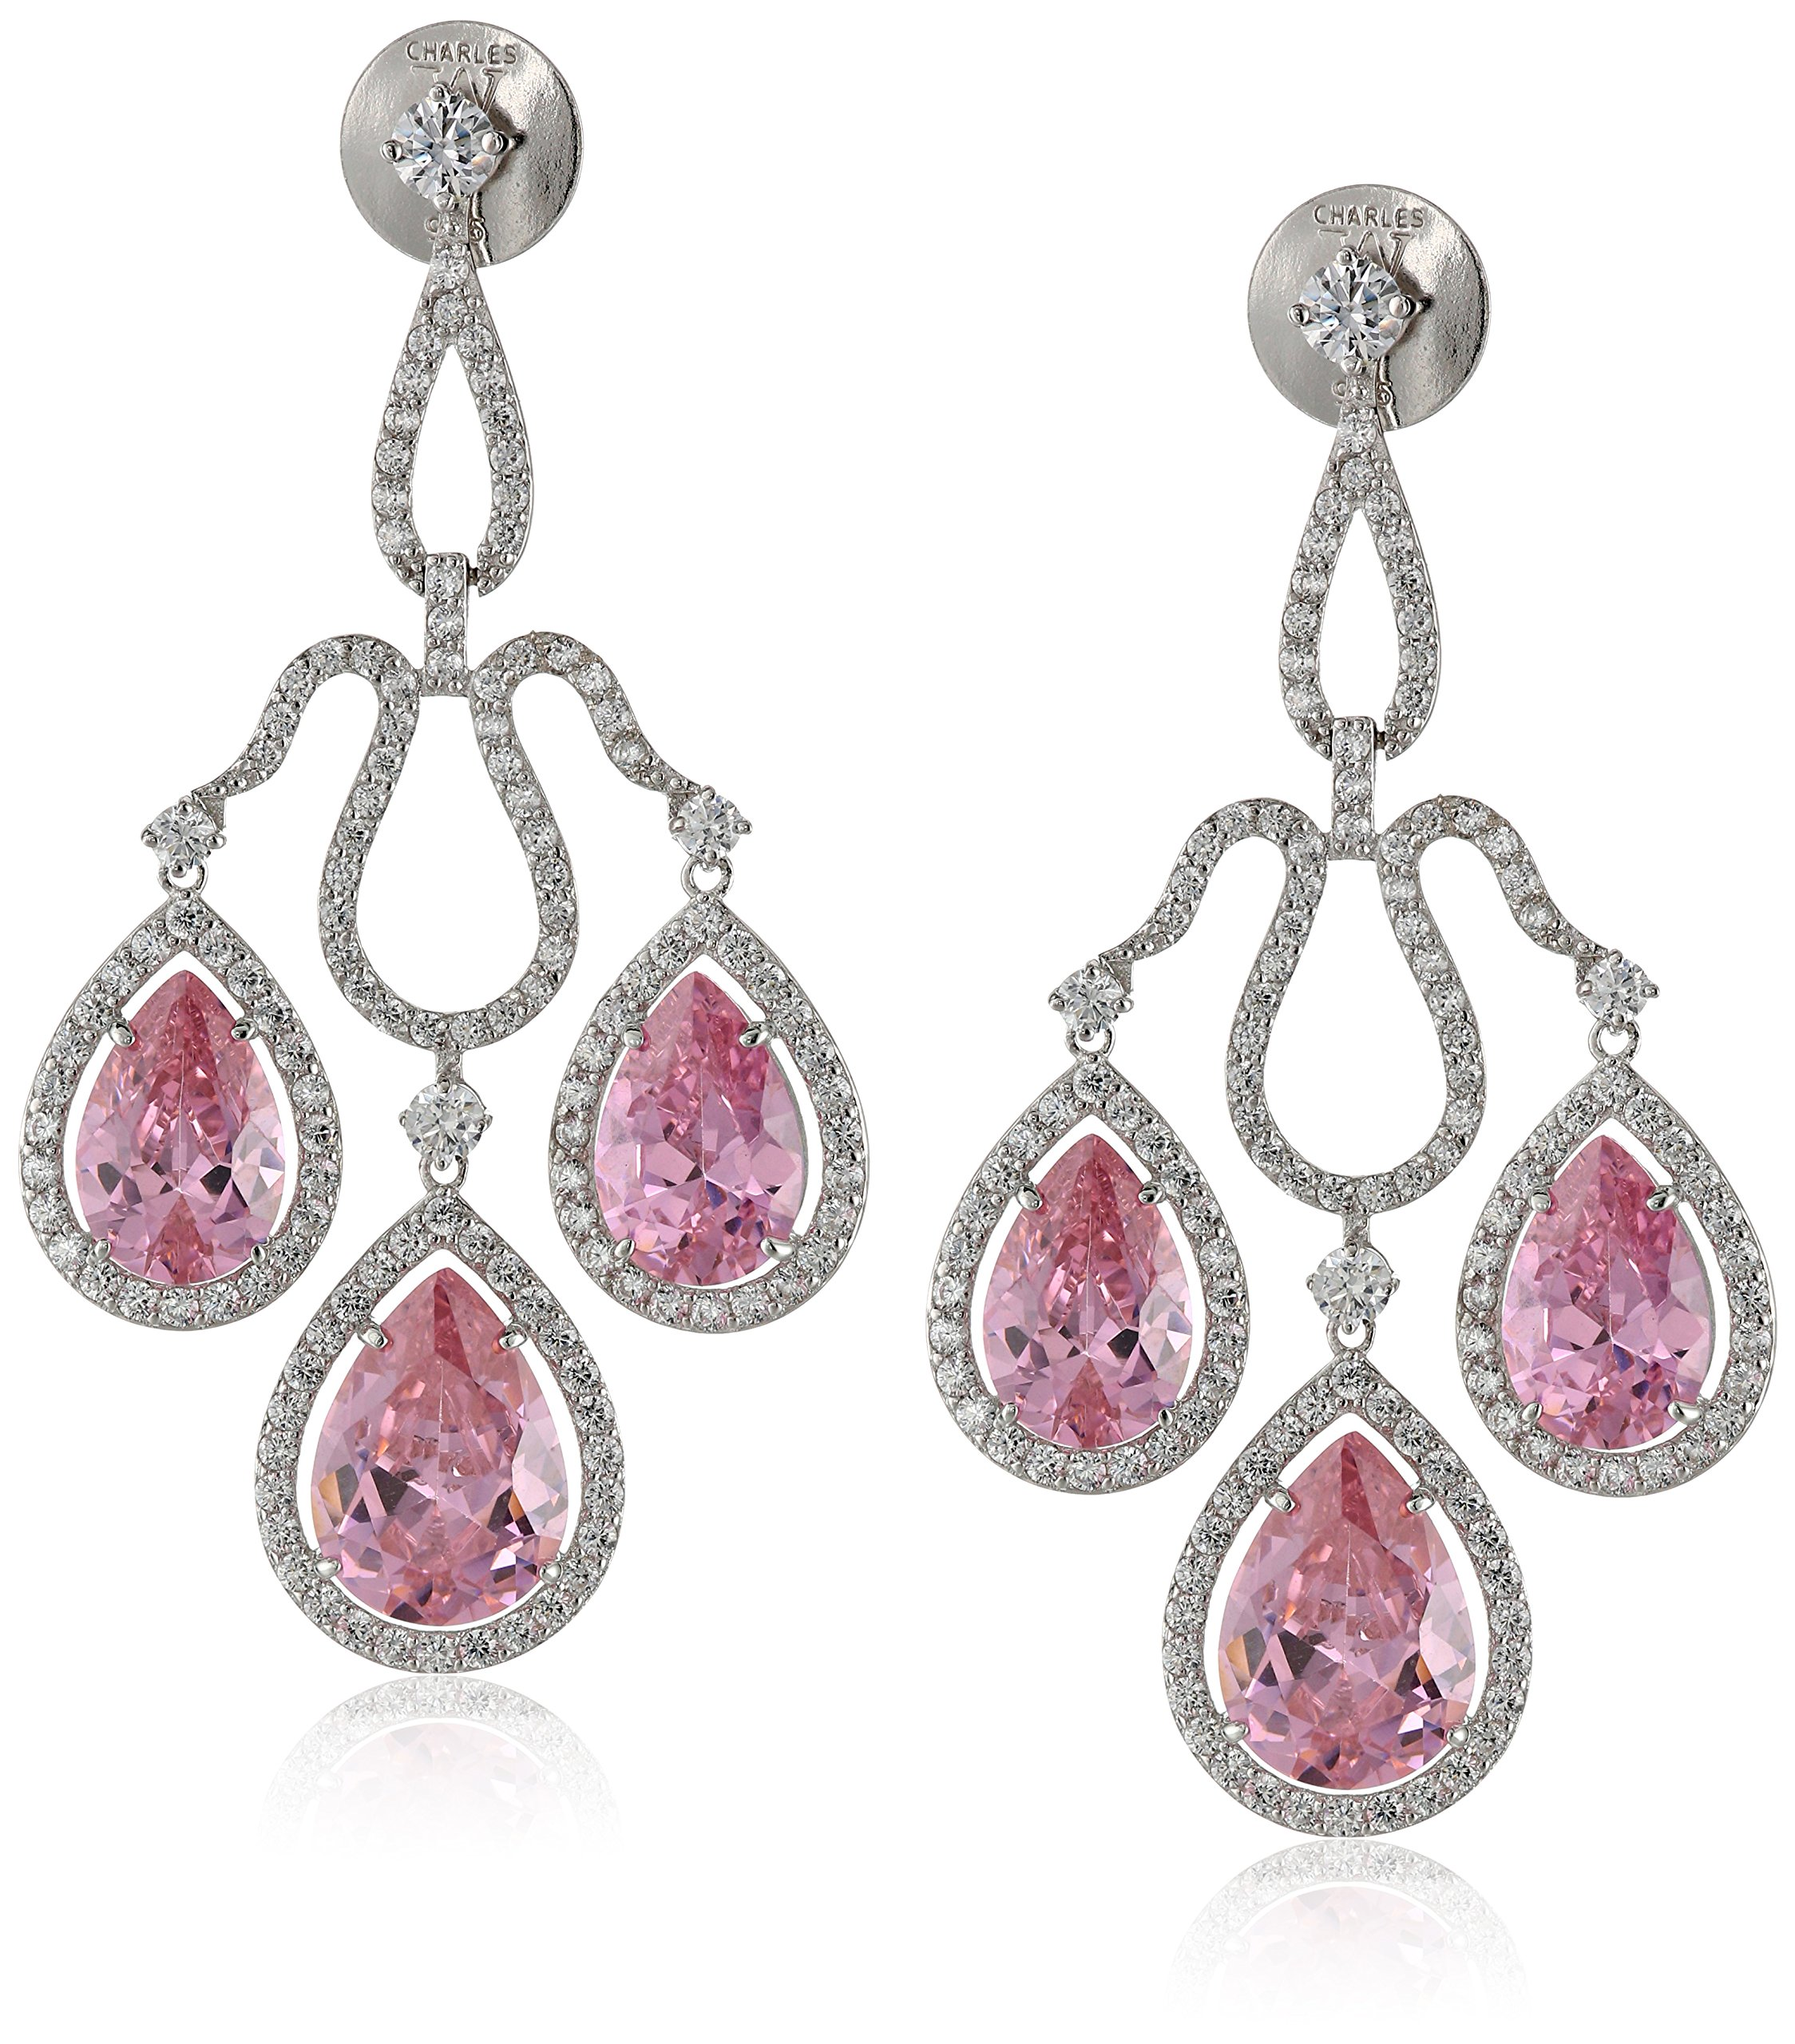 Charles Winston, S Silver, Pink & White Cubic Zirconia Chandelier Drop Earrings, 24.00 ct. tw.